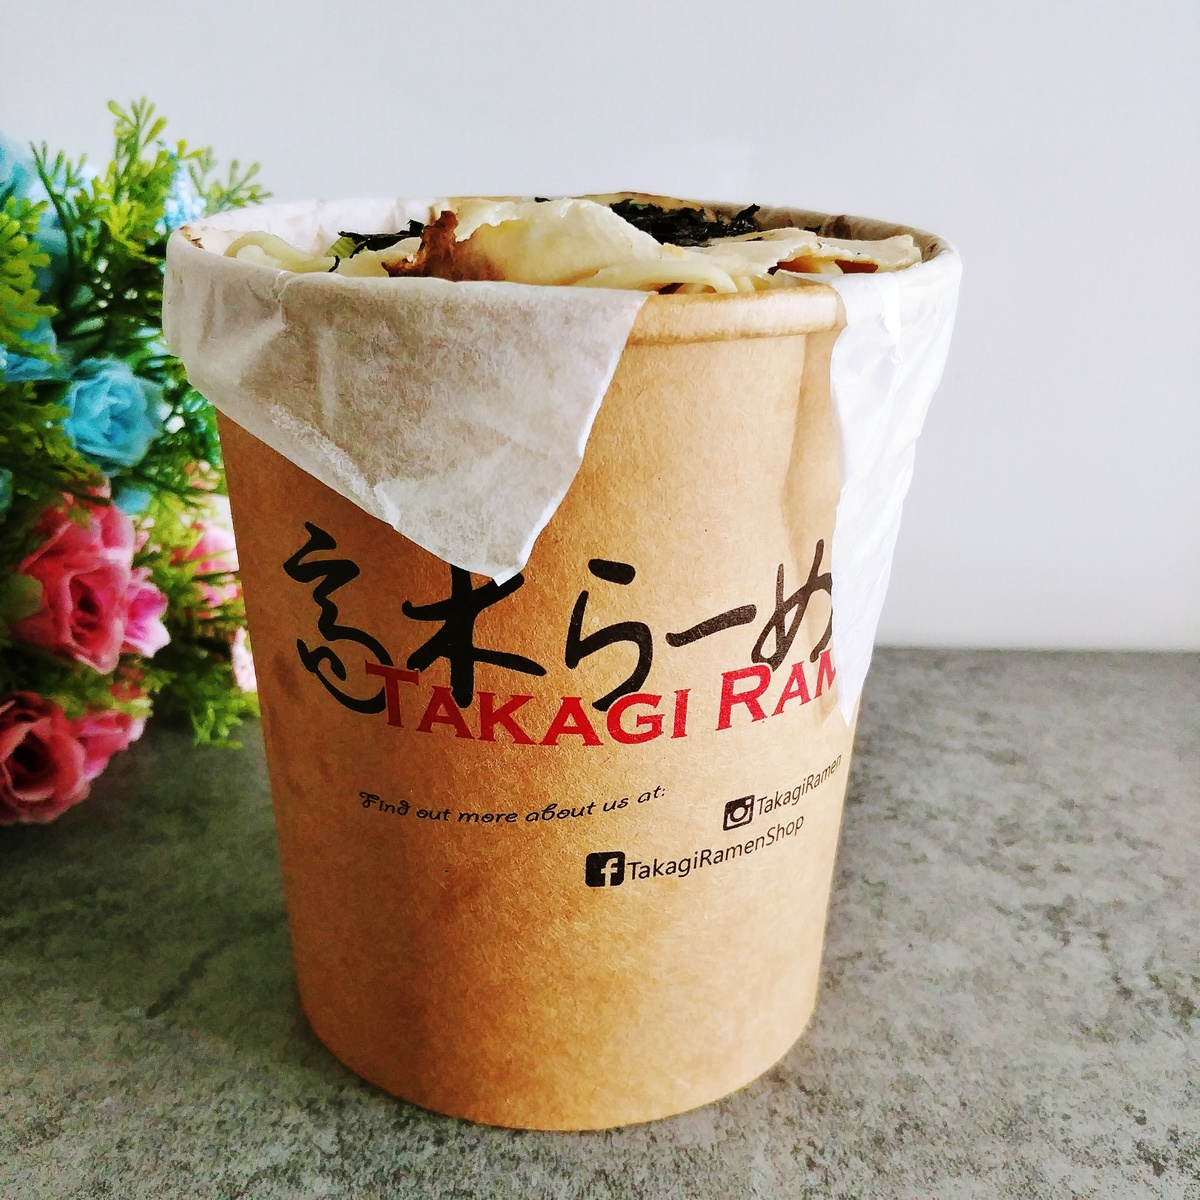 Takagi Ramen via honestbee food delivery